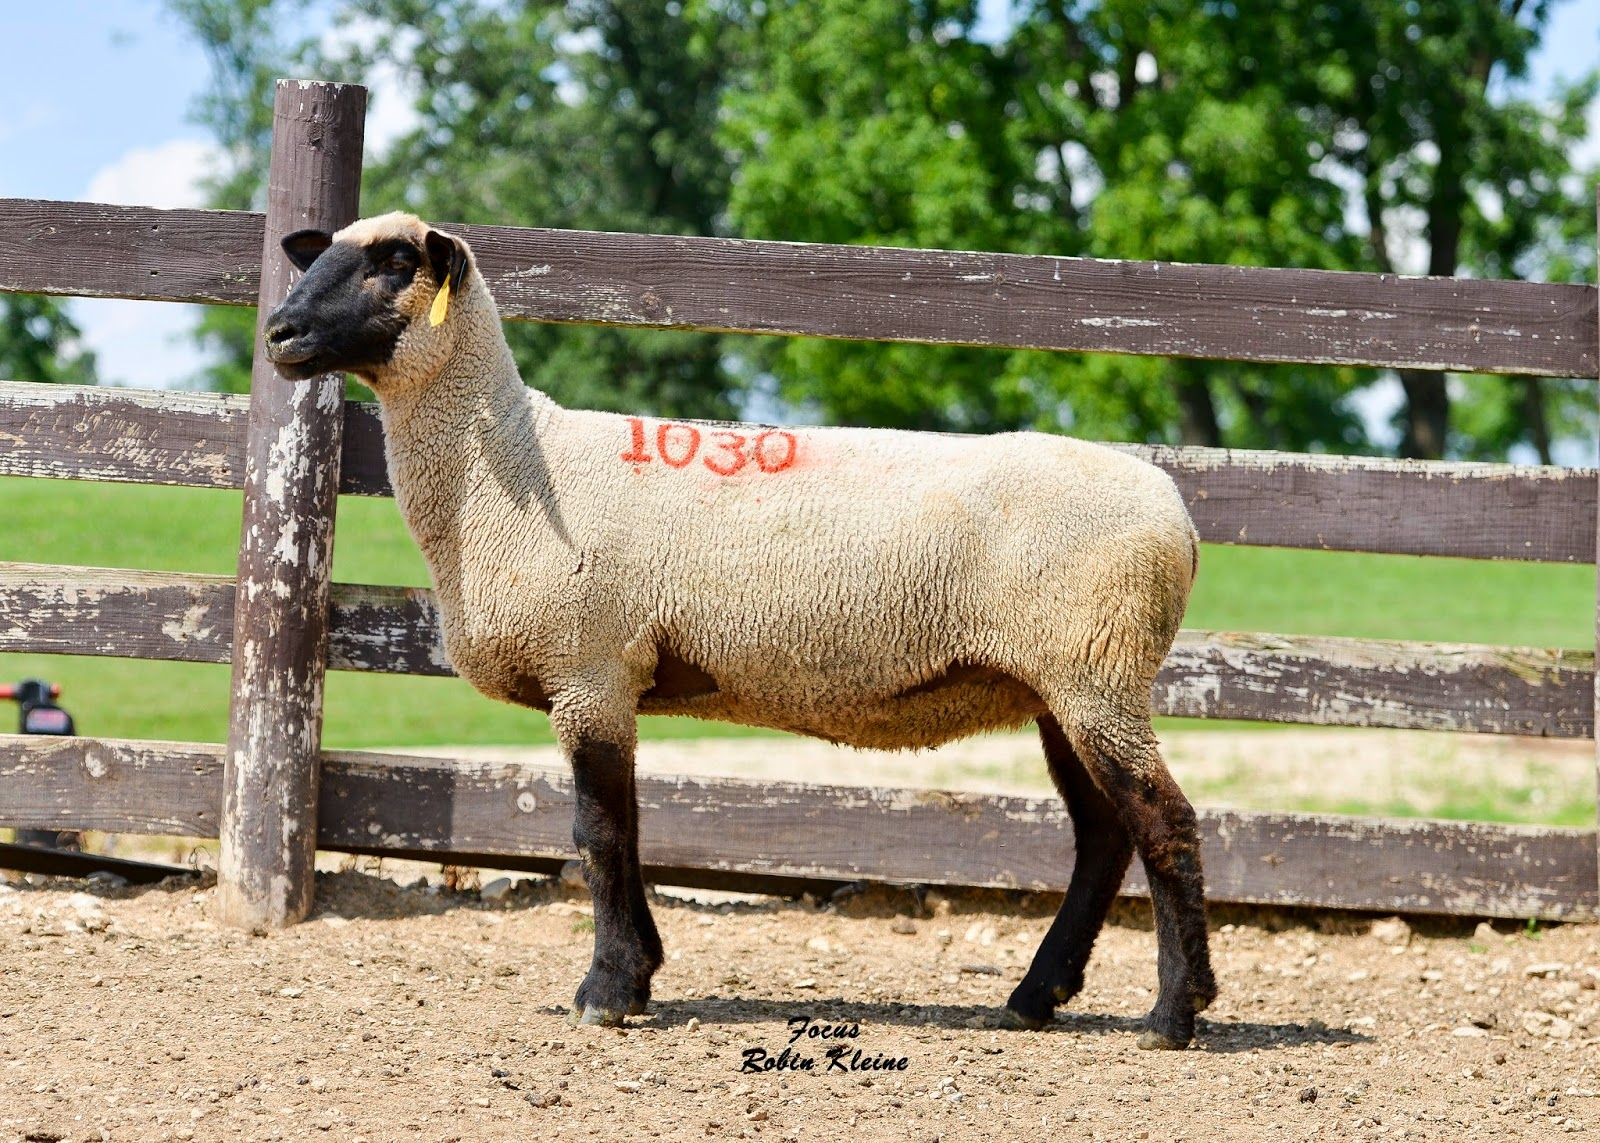 A great set of ewes sell this week from Impact Hamps, WI -- Got Focus? :|: Blog from Focus Marketing Group, Inc.: Where's Our FOCUS This Week? Vol. 73